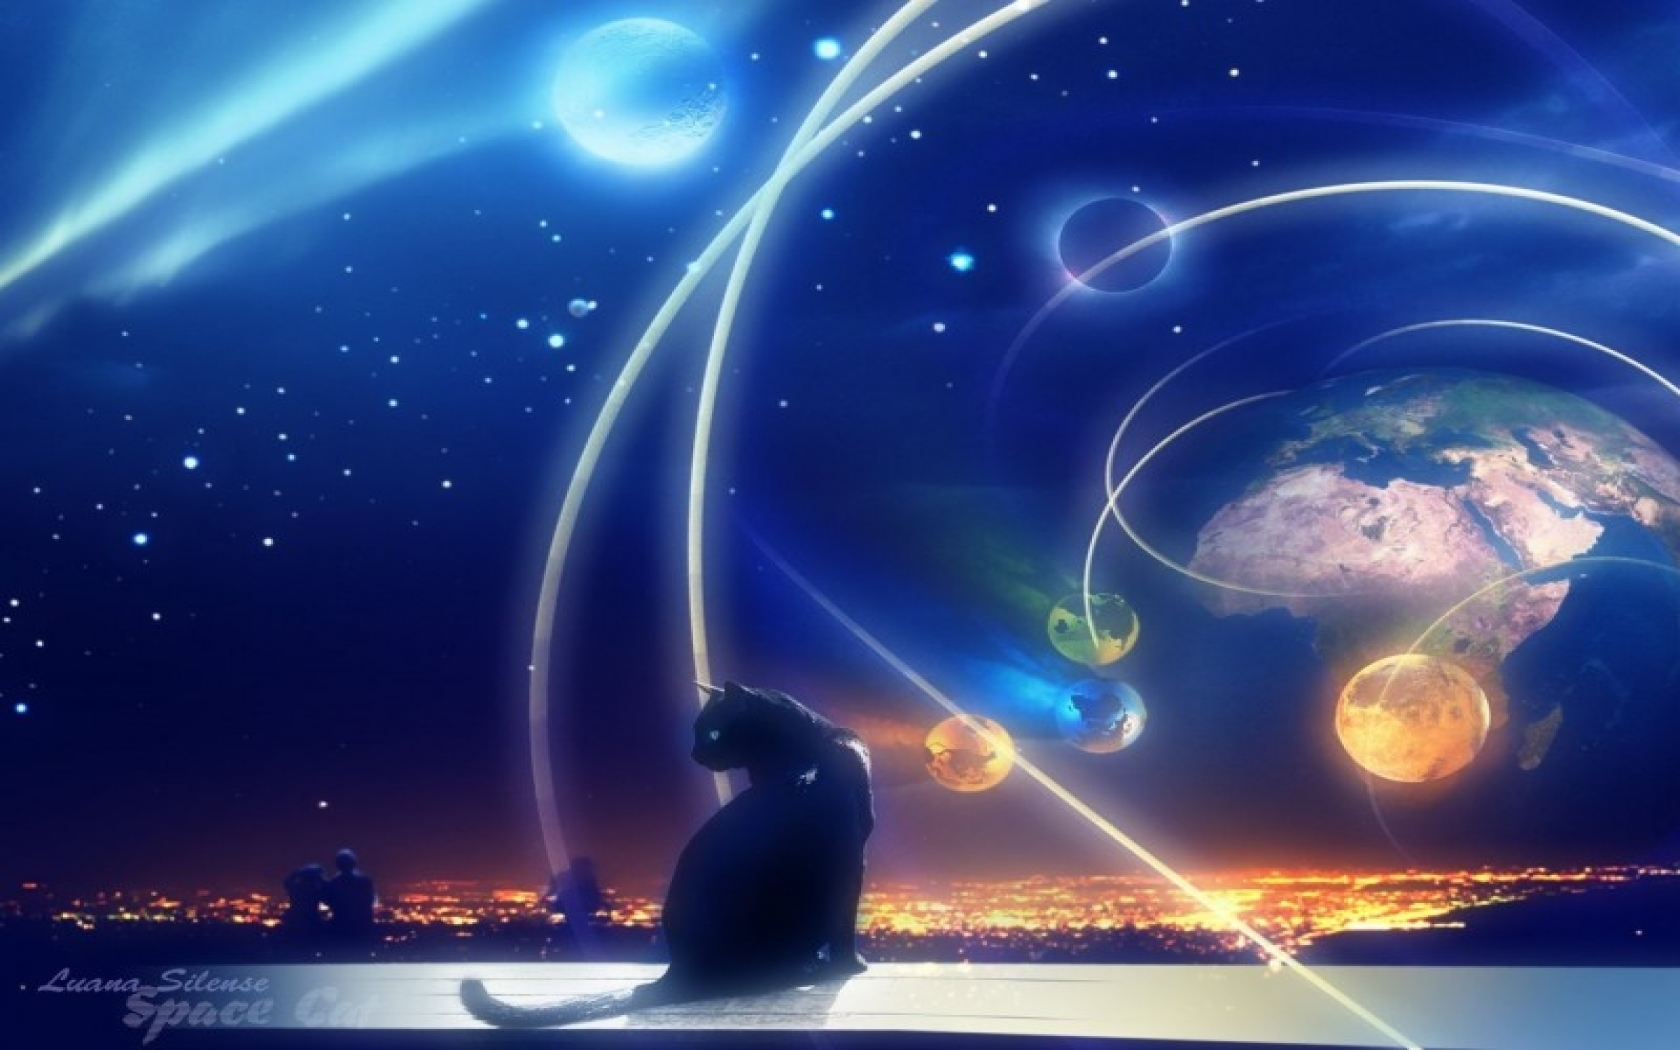 24920 download wallpaper Animals, Landscape, Cats, Planets, Universe, Pictures screensavers and pictures for free